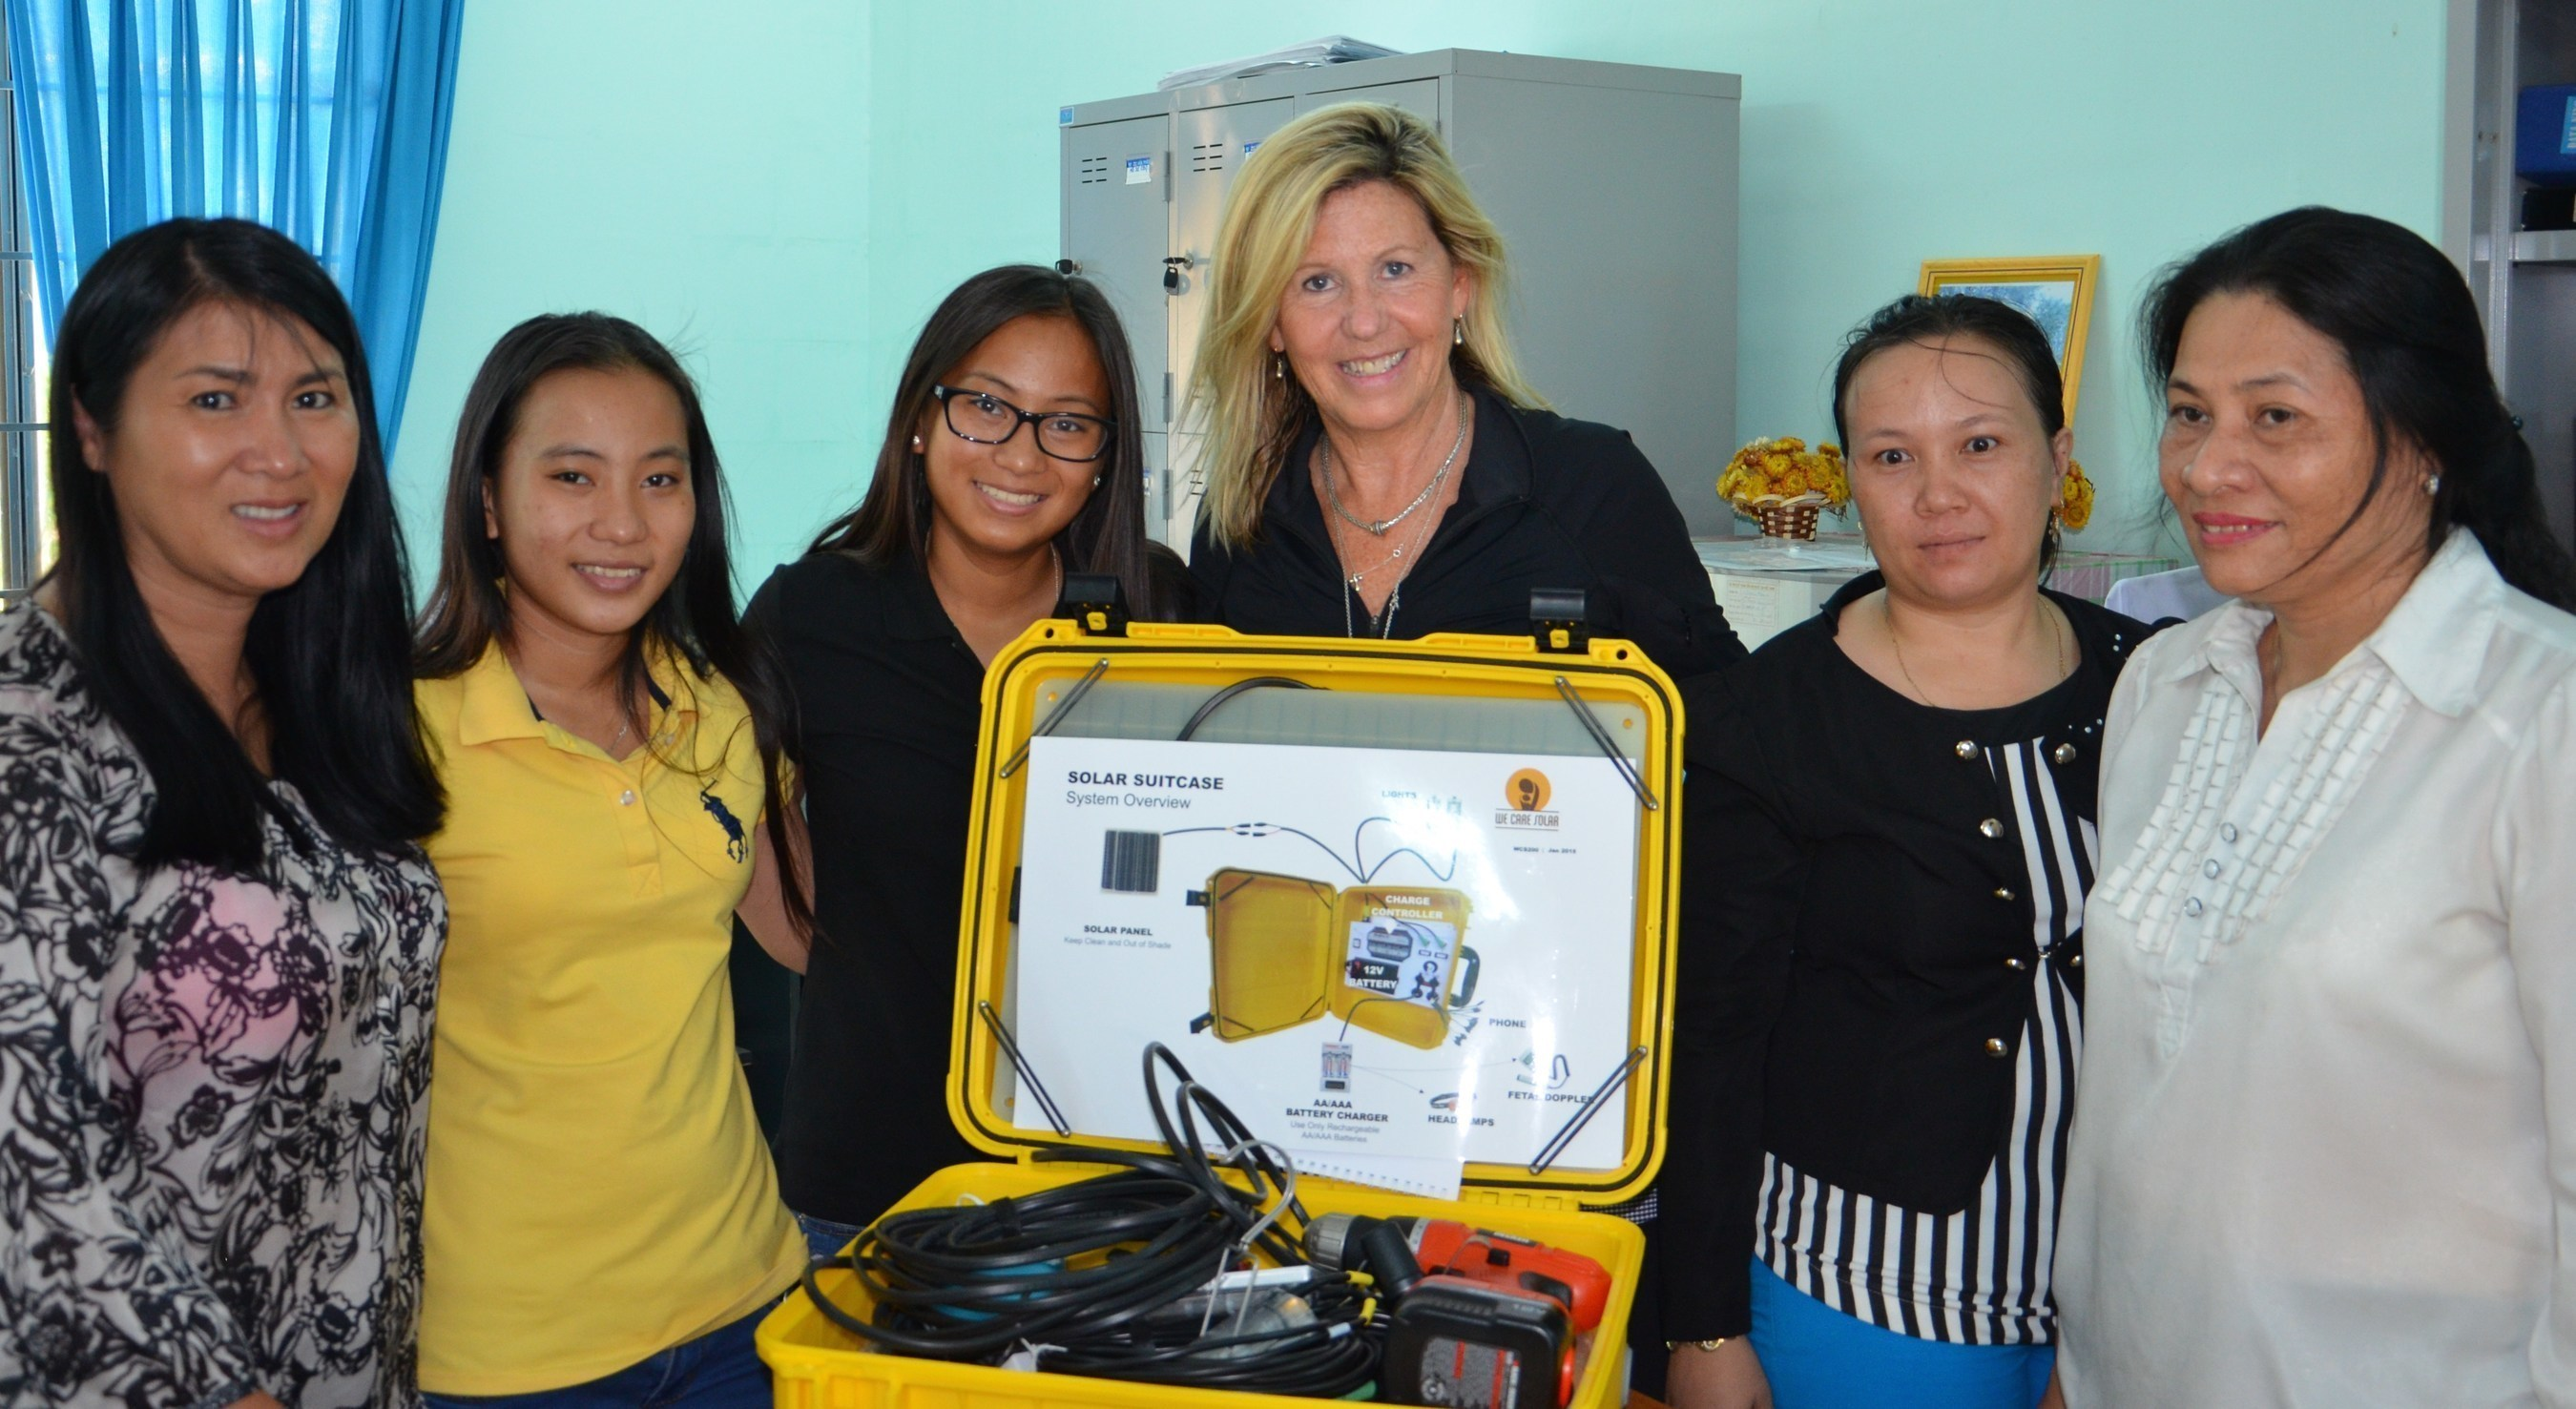 Keely Solimene of Bella   Ha, alongside twins, Isabella and Ha deliver the first Solar Suitcase to a remote clinic in the Khanh Hoa province of Vietnam.